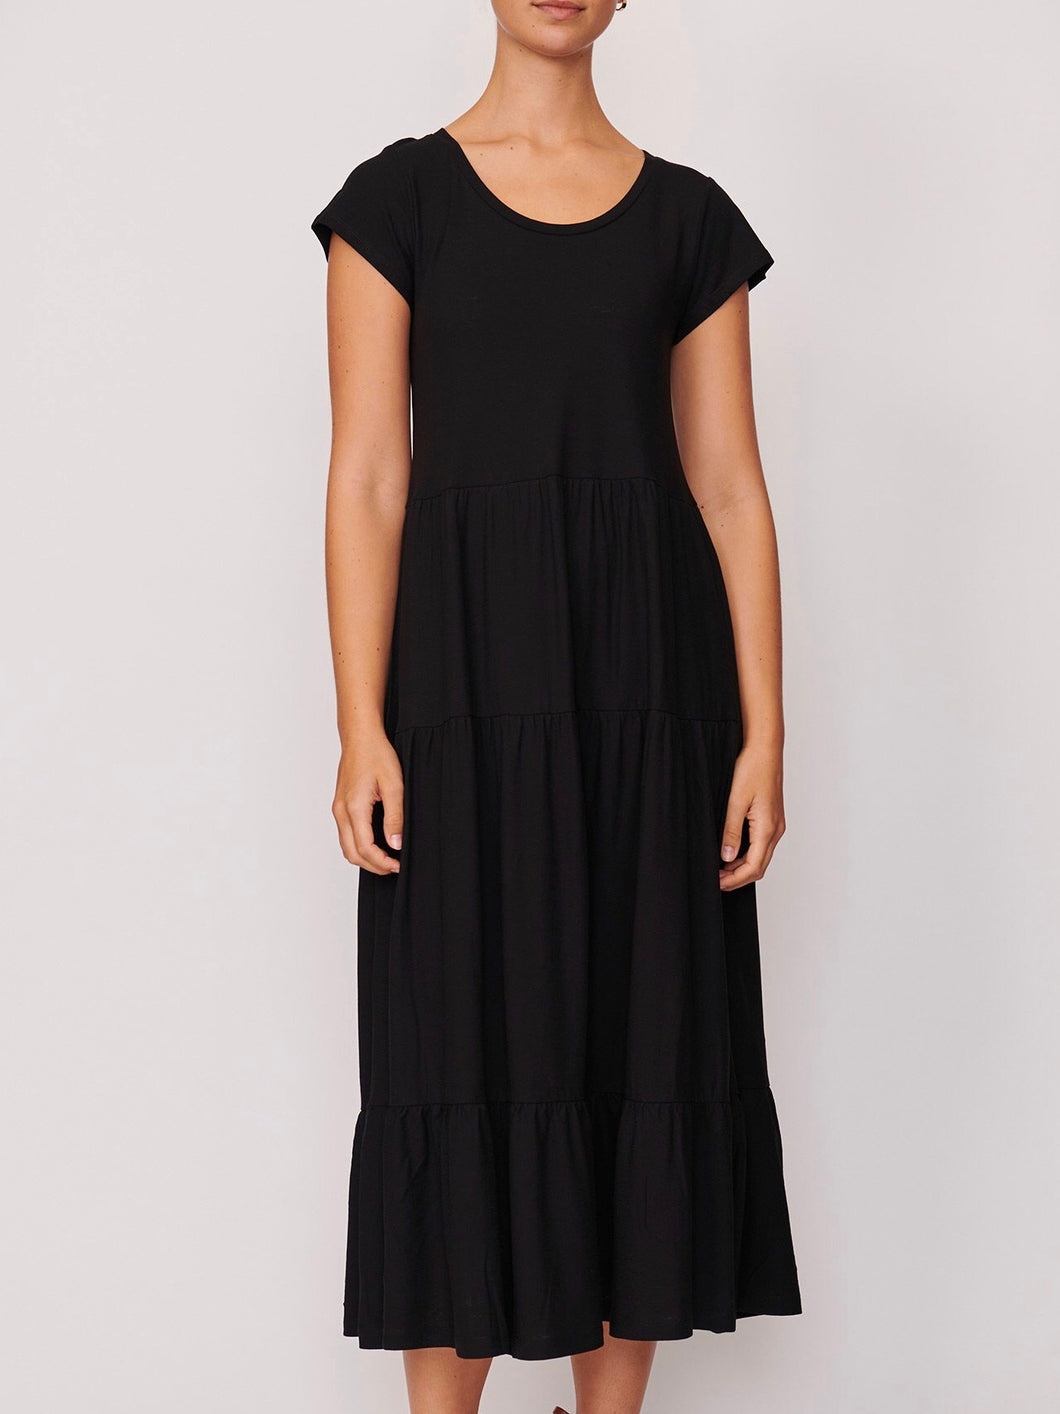 Process Layered Dress - Black